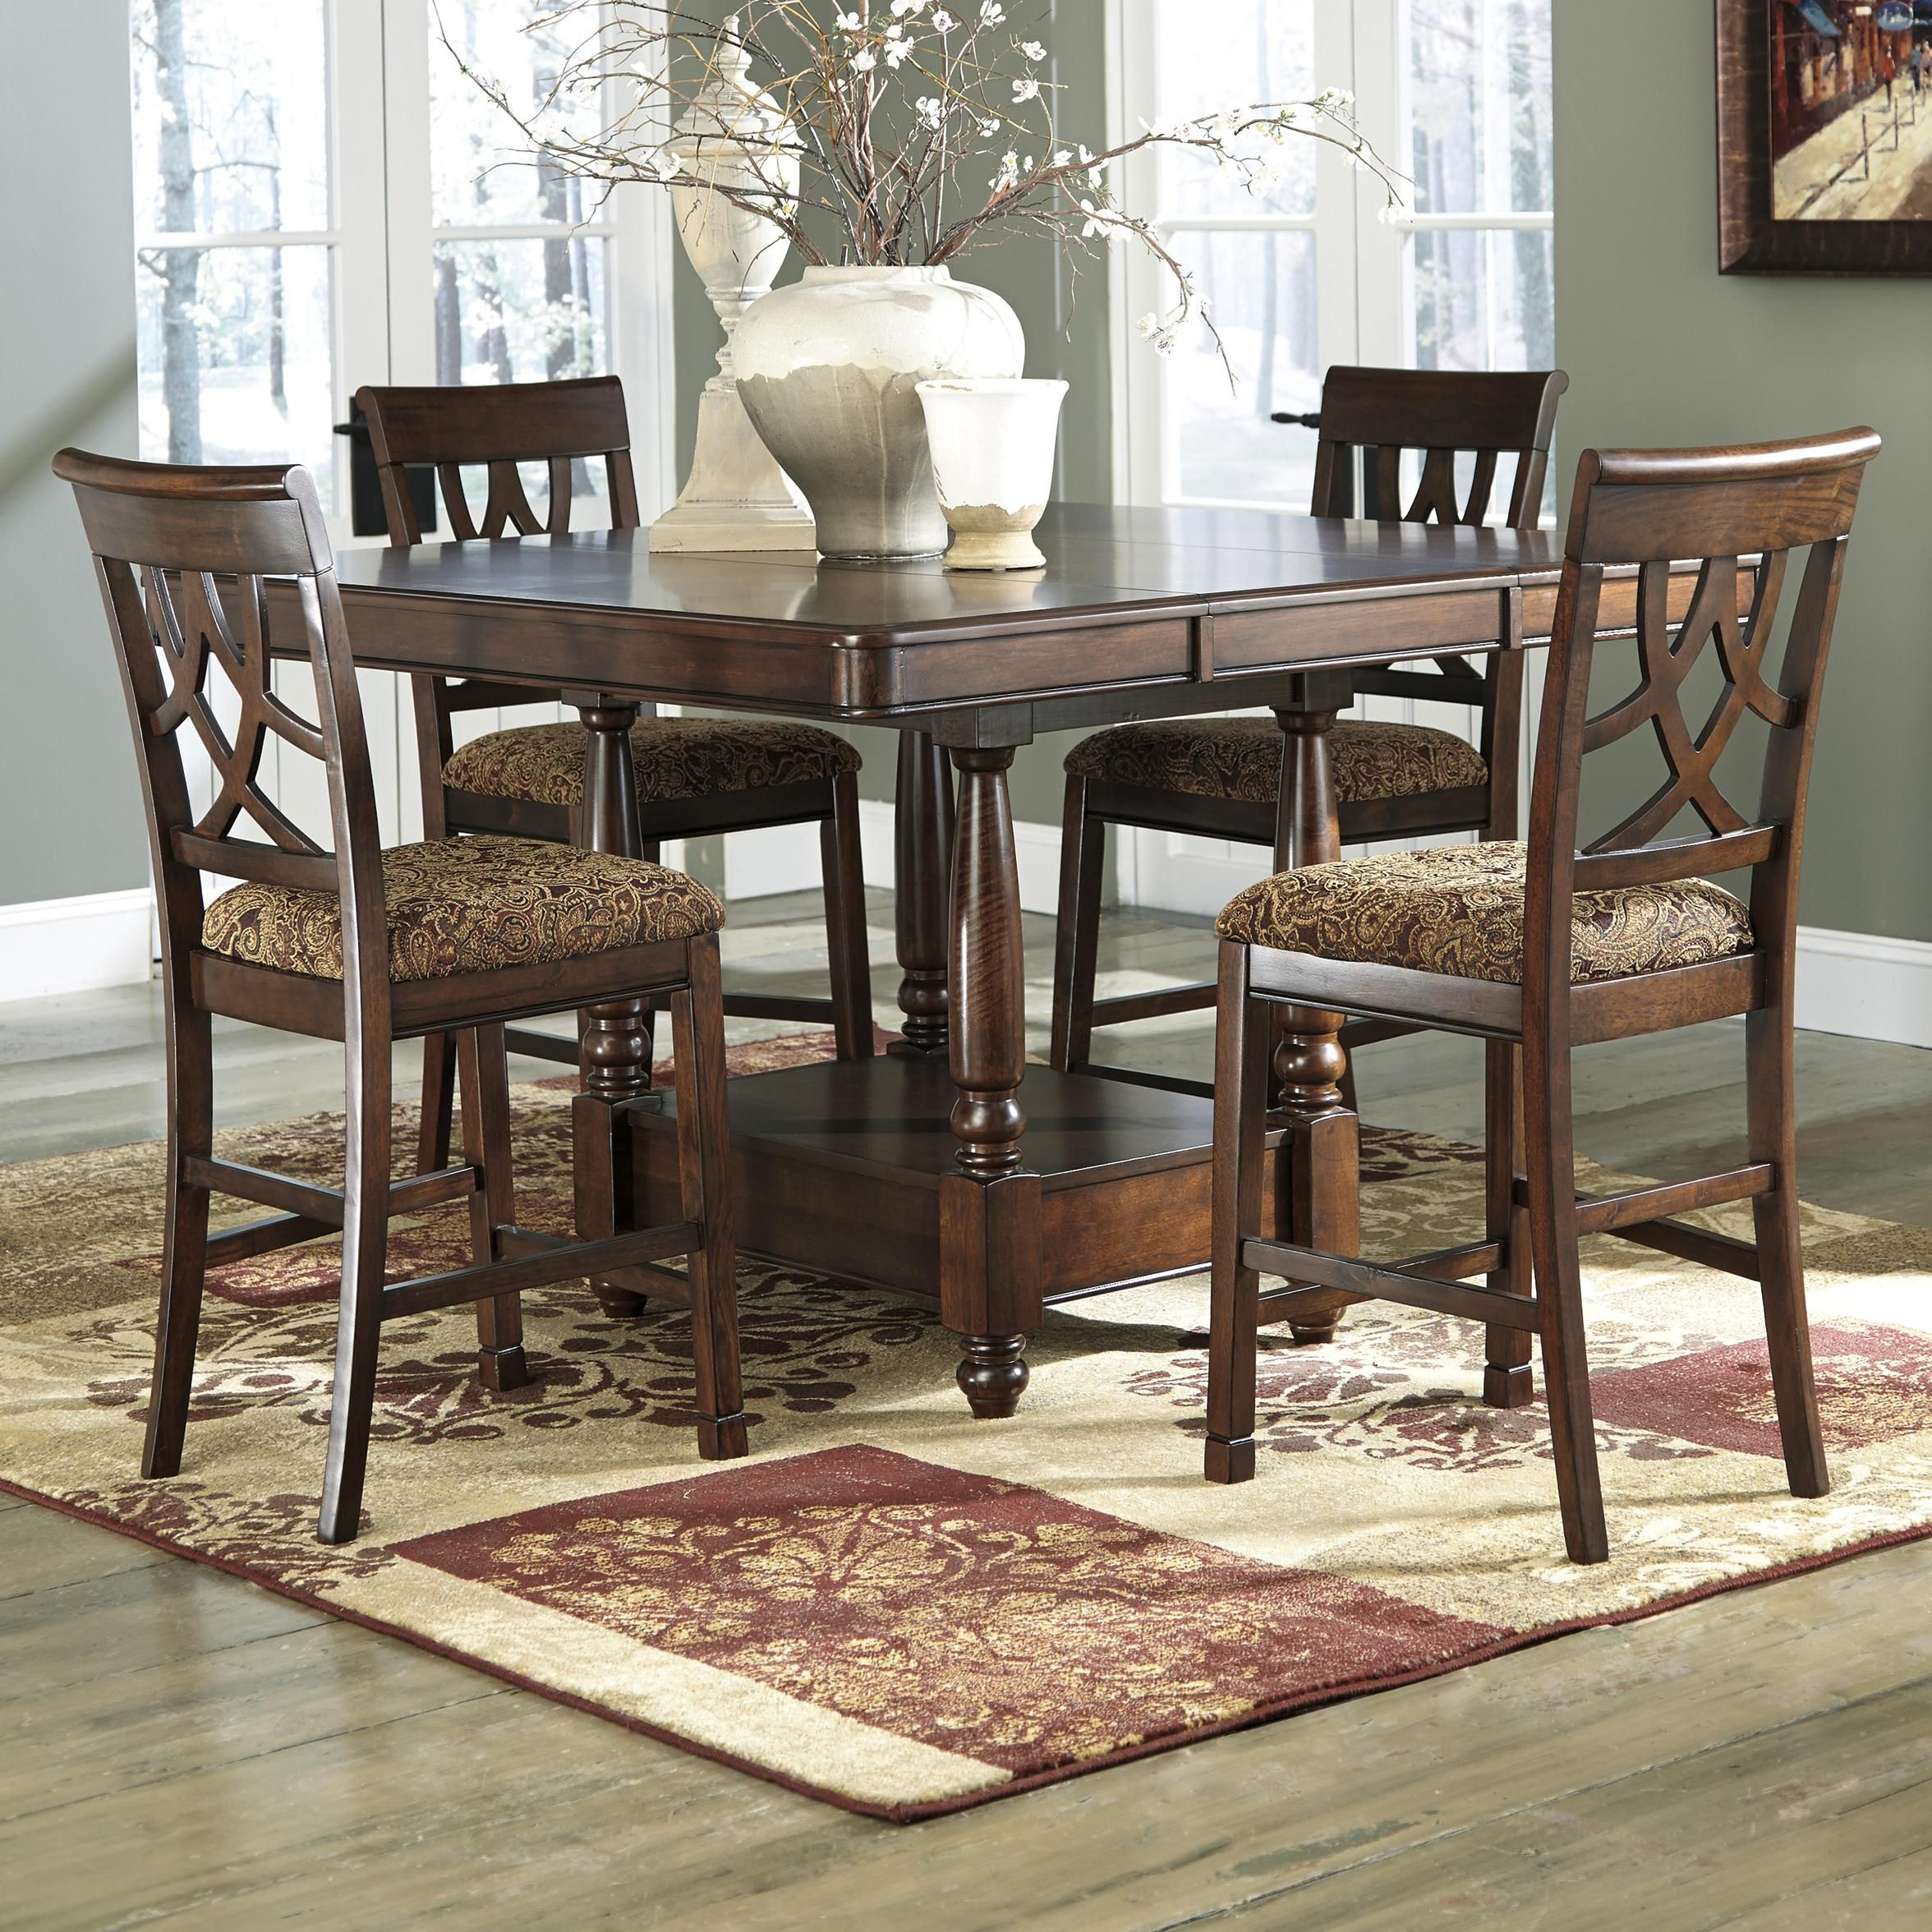 Ashley Furniture Dinette Set: Leahlyn 5-Piece Dining Room Set